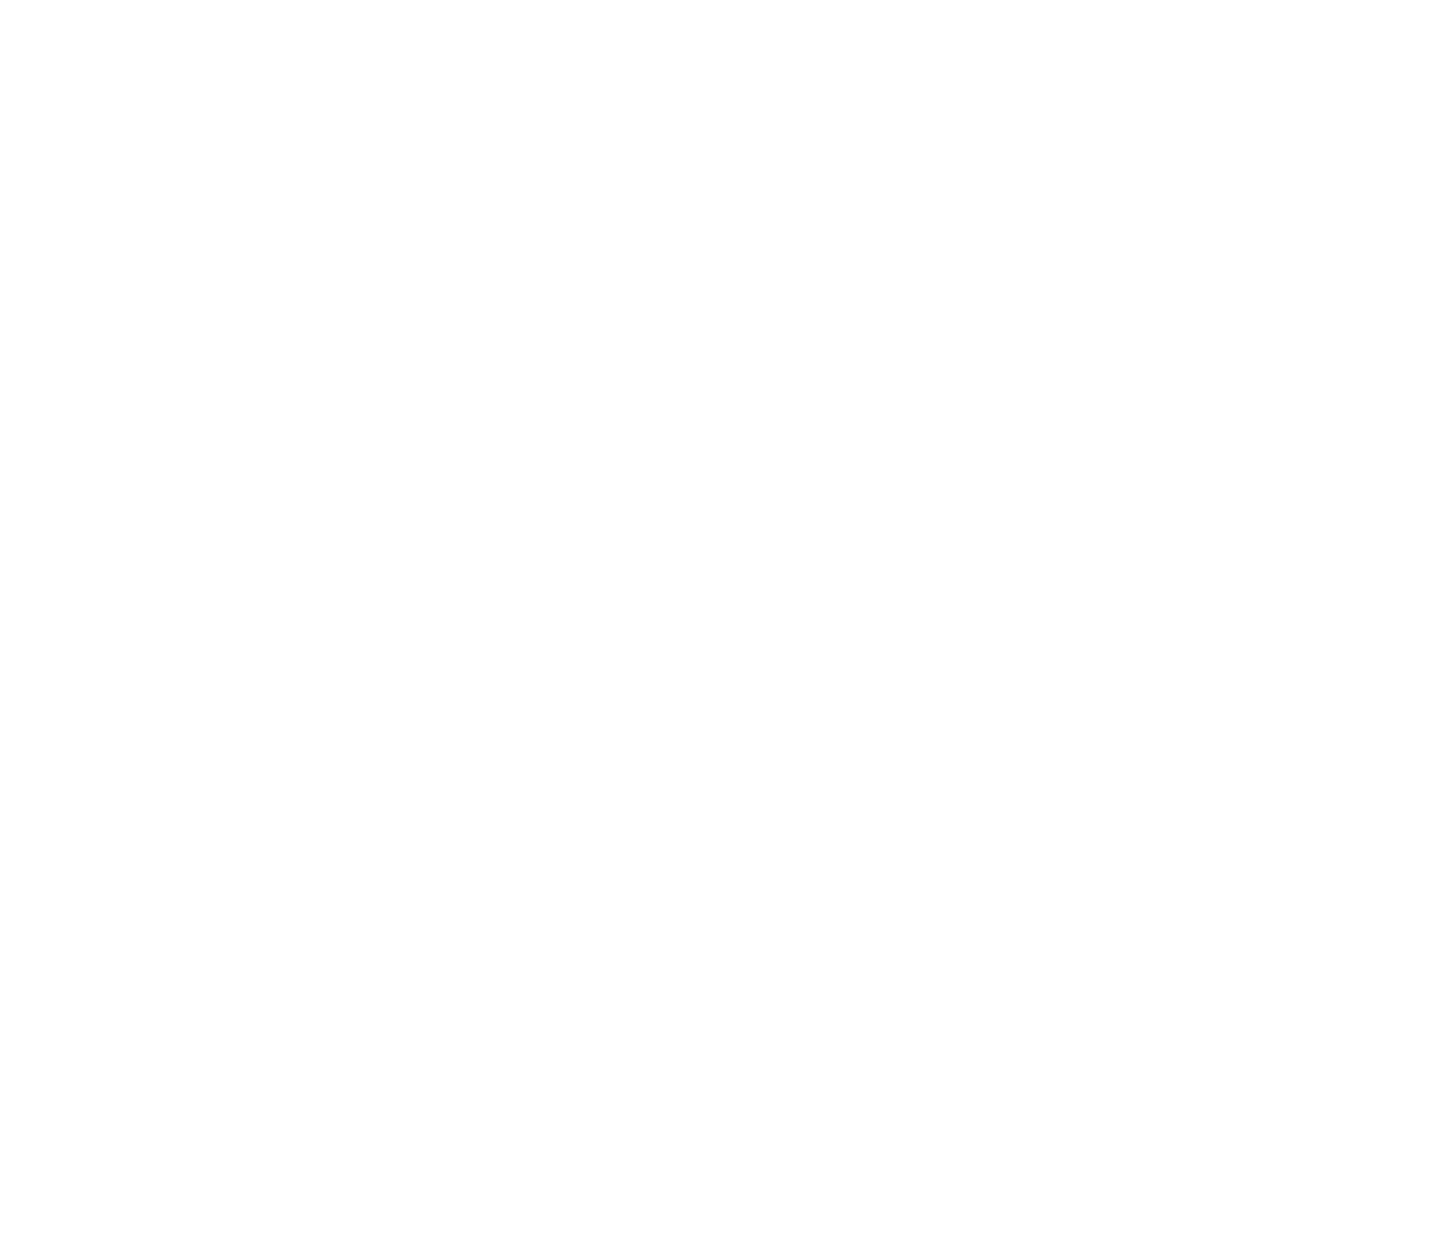 ADAPTATION - an Ali Group Company negative